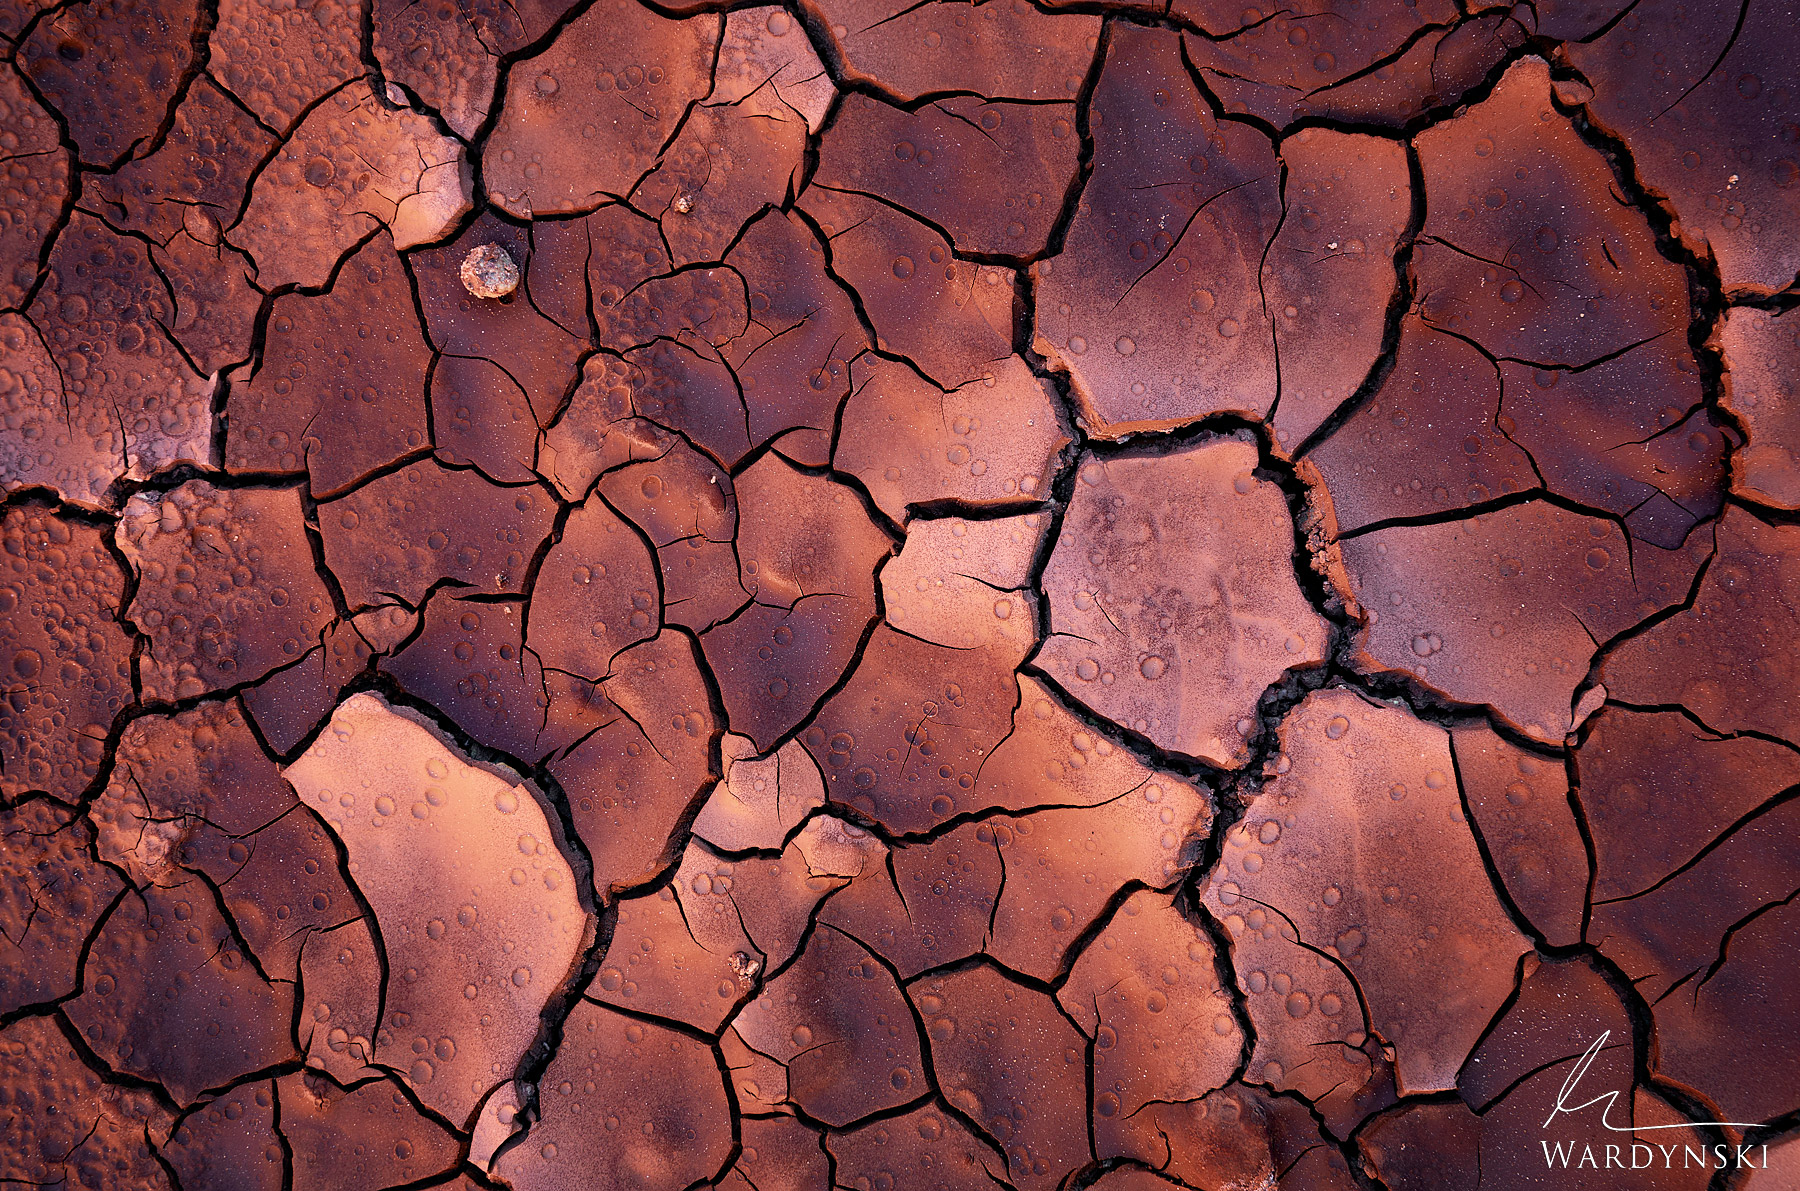 Fine Art Print | Limited Edition of 100  Cracked mud tiles and rain creators make wonderful textures on the red dirt floor of...